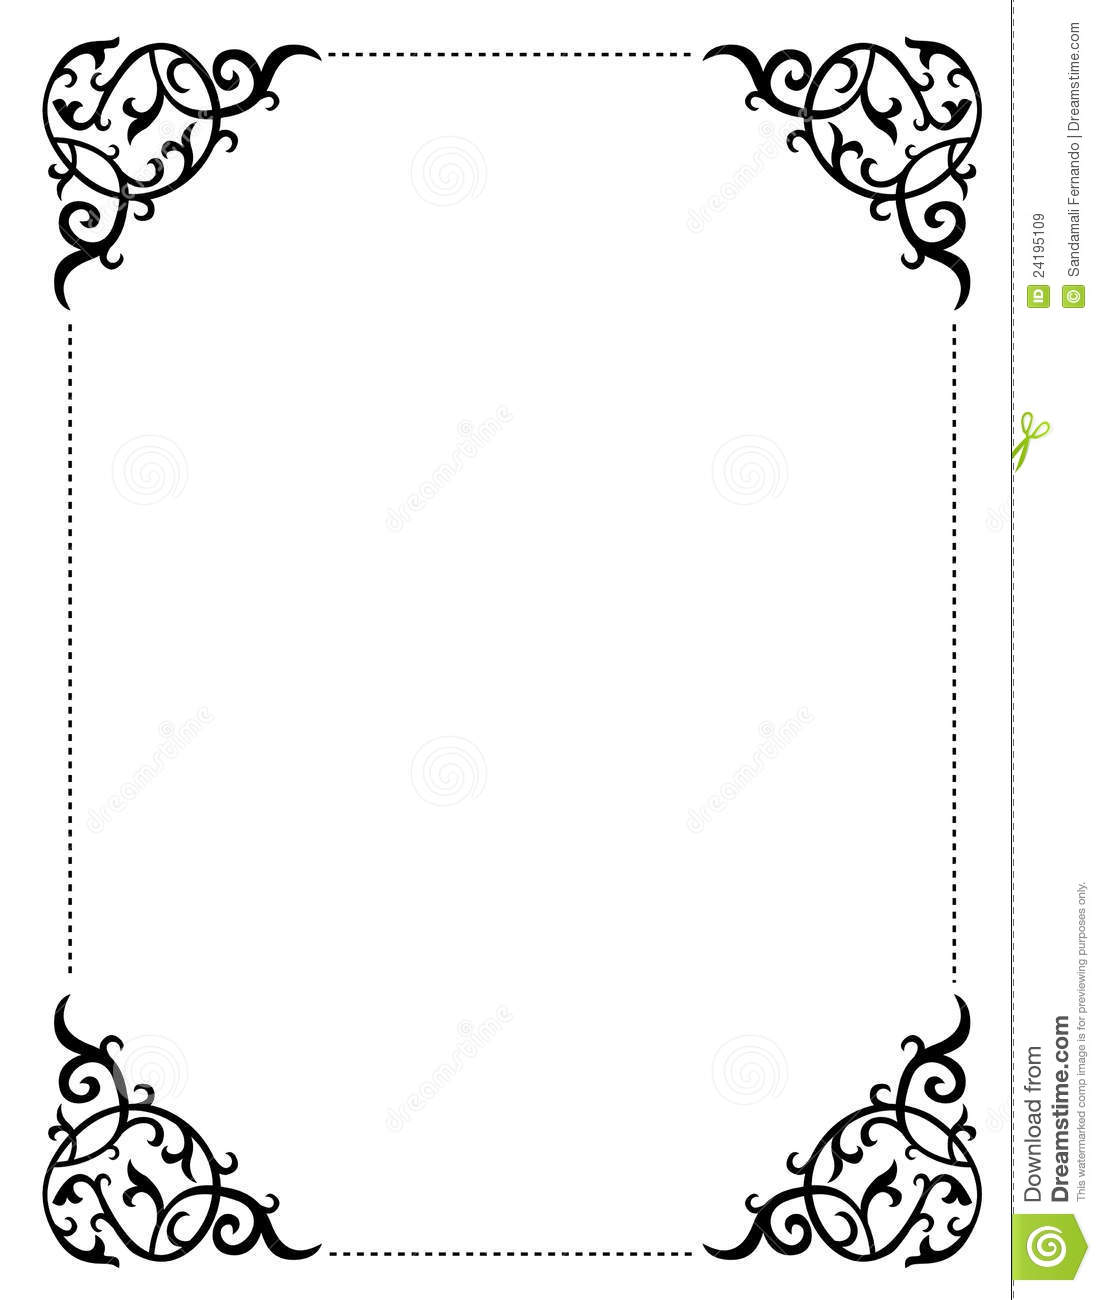 5 Images of Printable Borders And Frames Clip Art